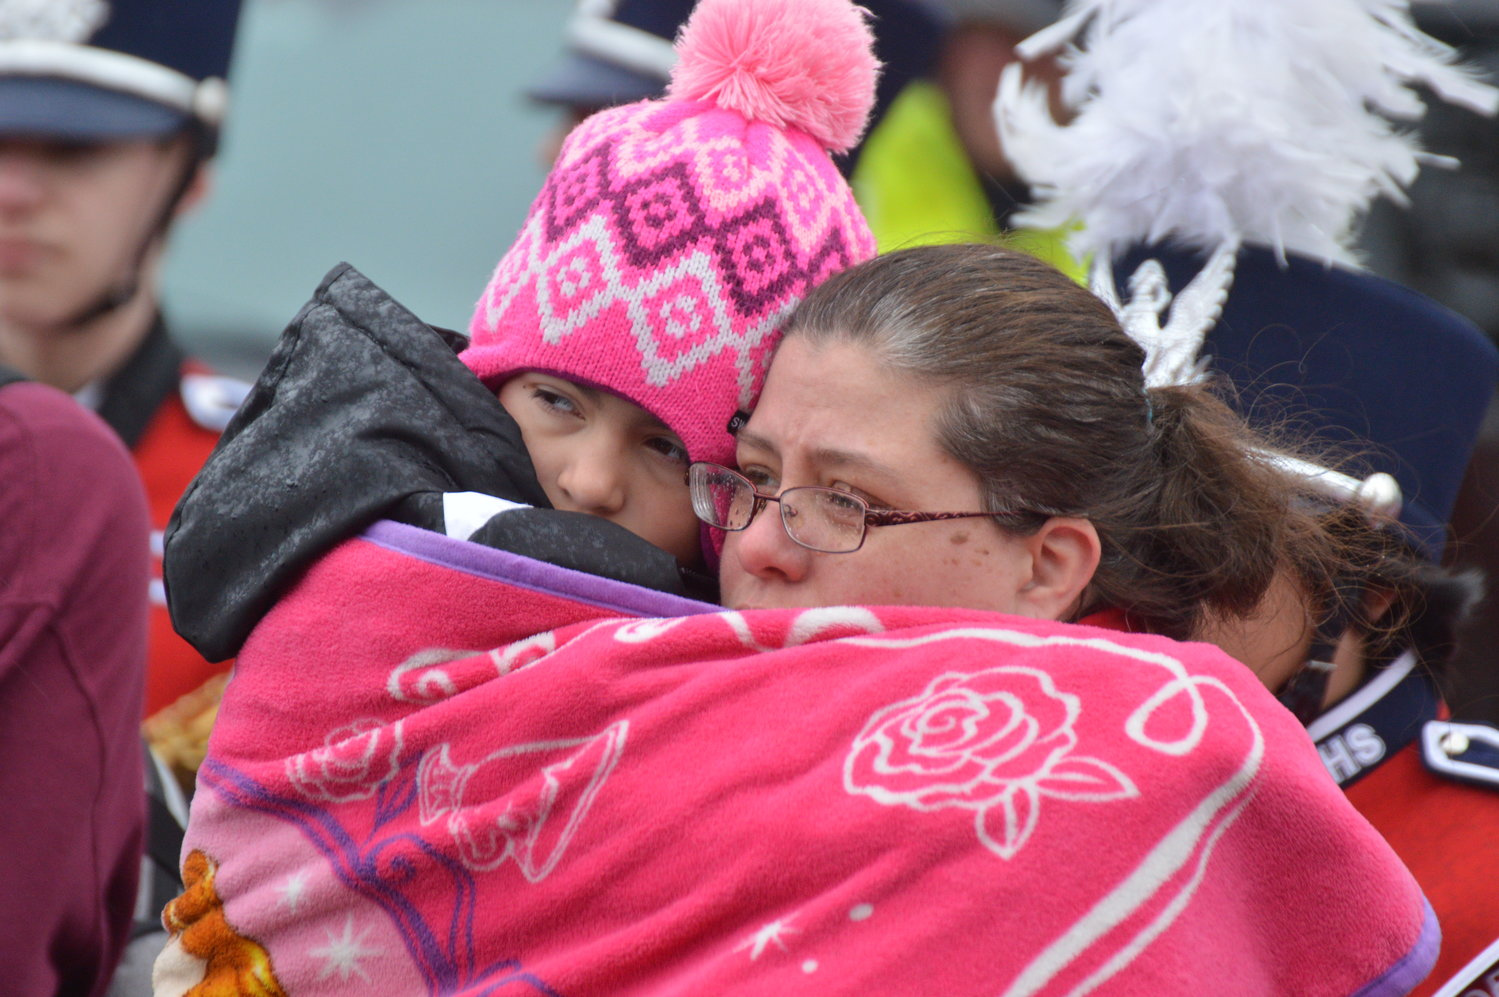 Angelia Williams, 8, snuggles with her mom, Victoria, as they keep warm during the Connor Peckham memorial dedication ceremony.